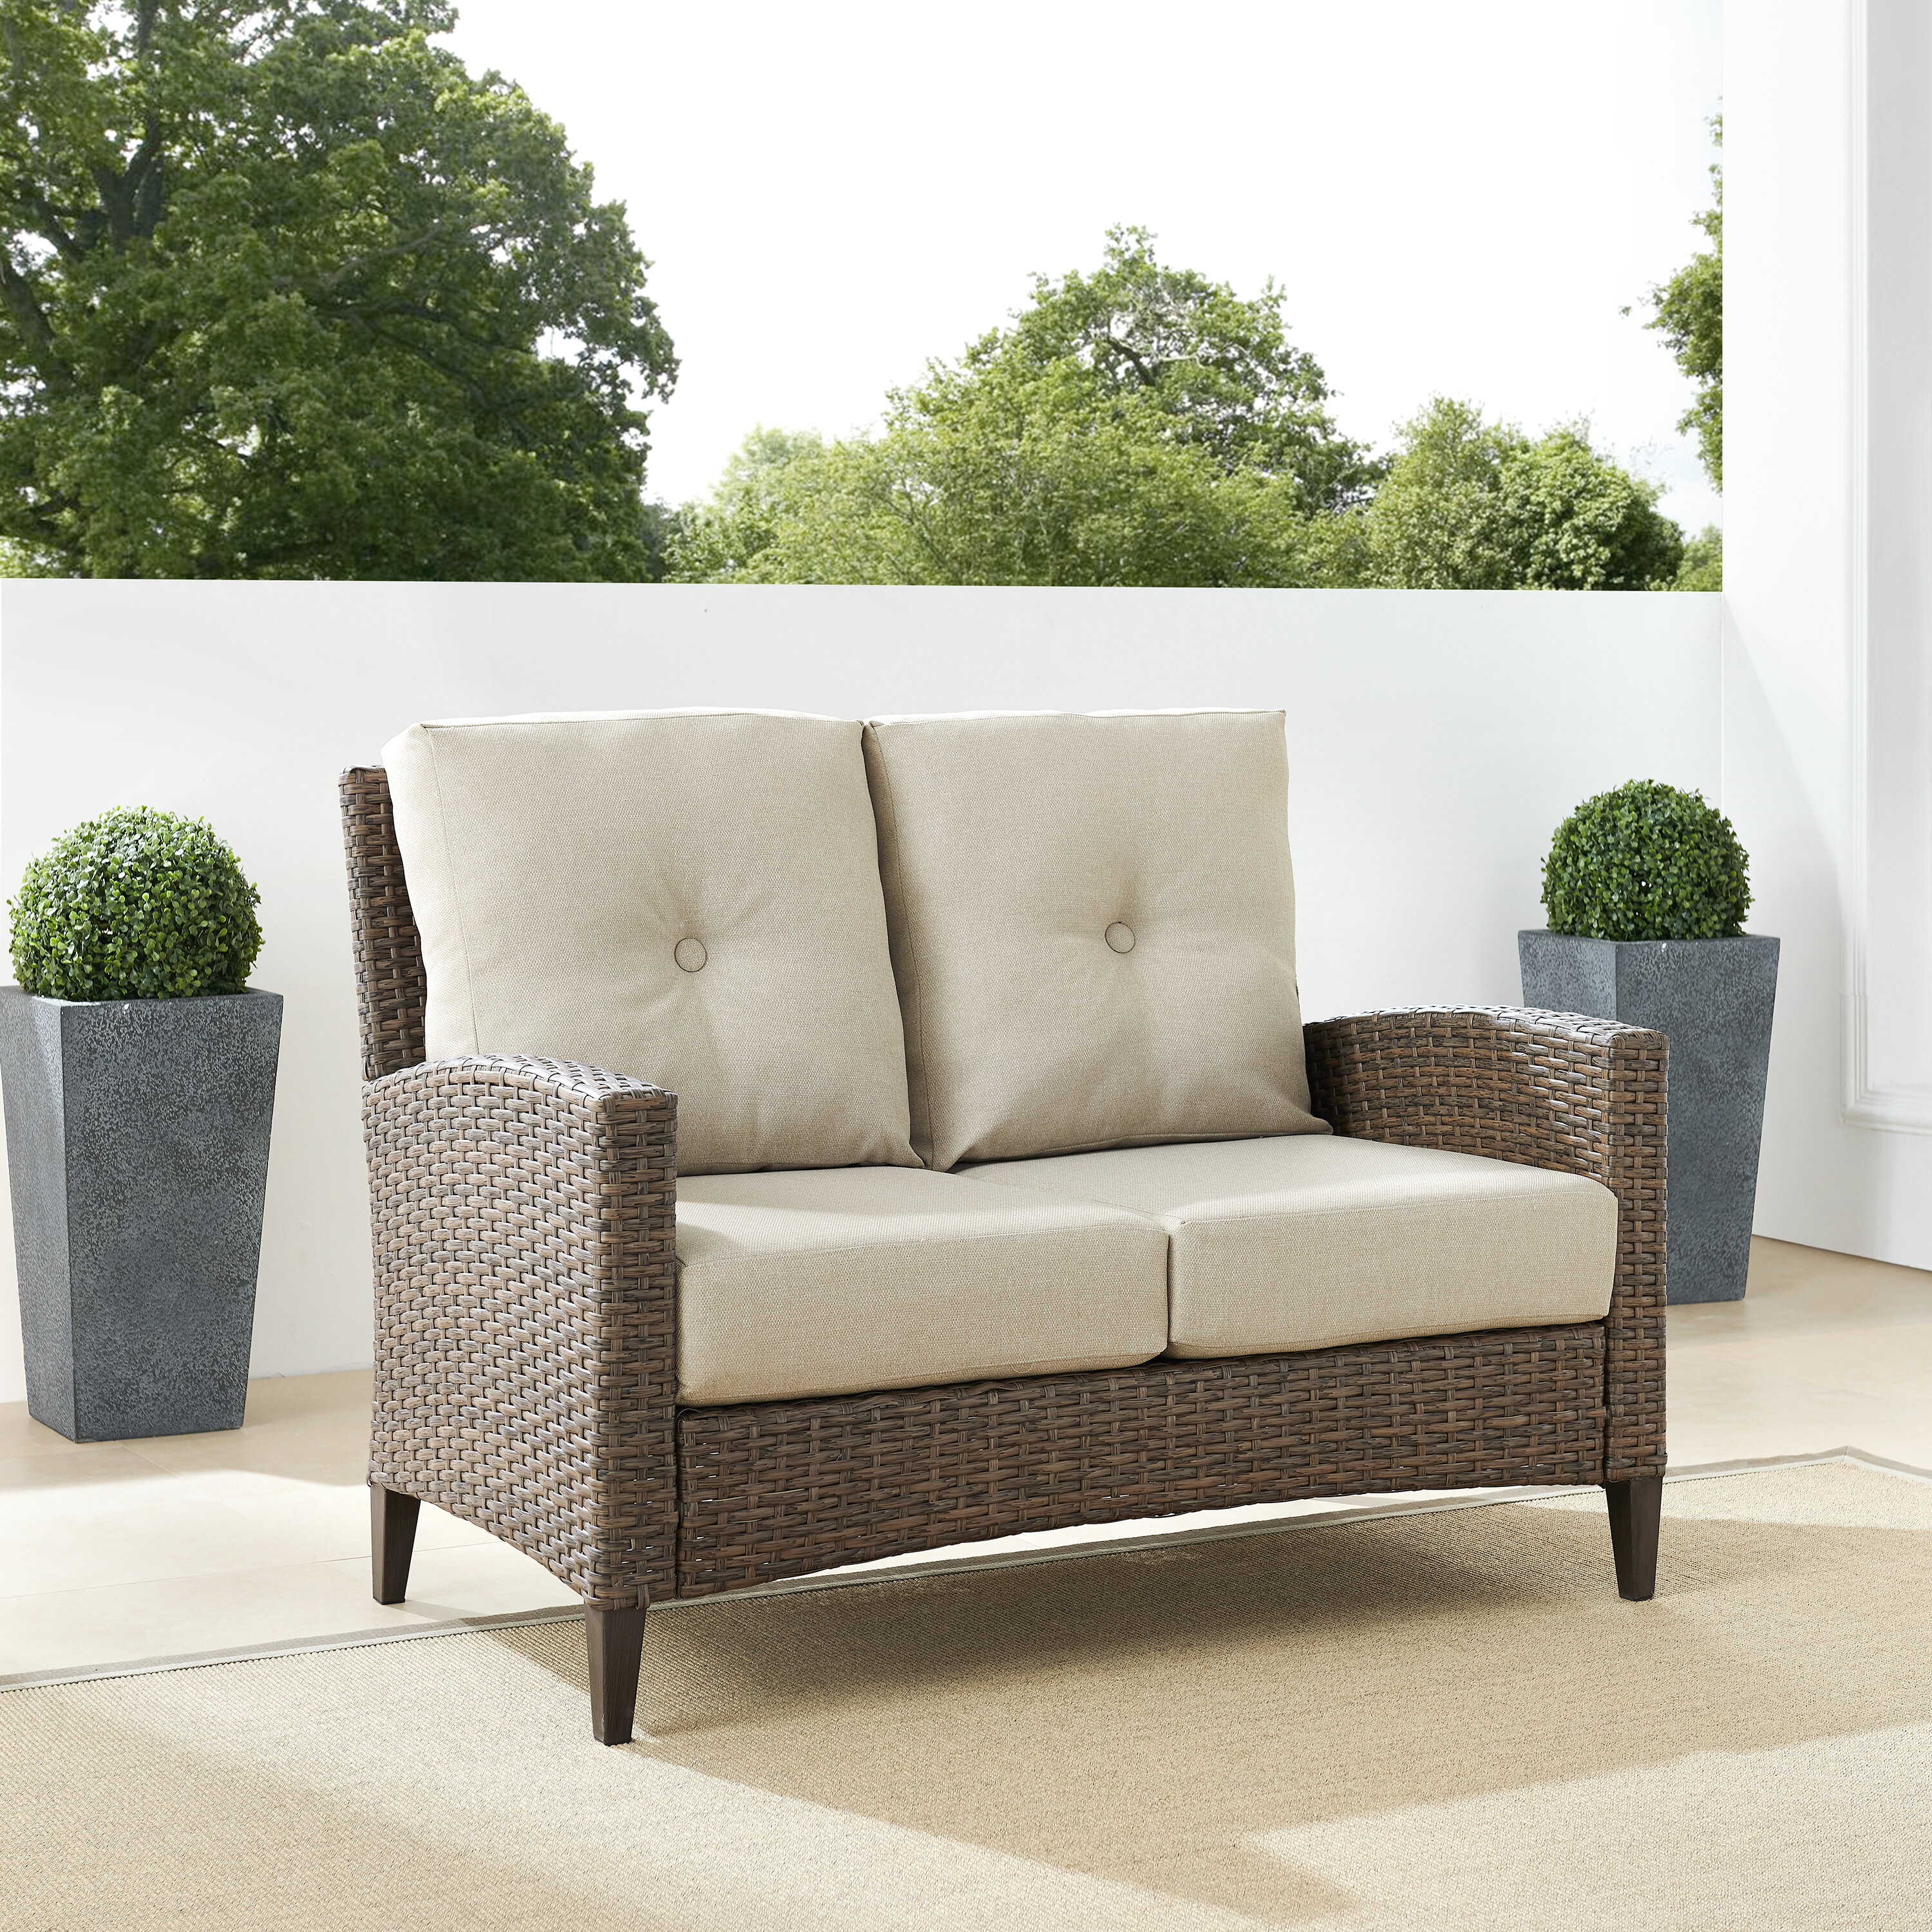 Allis Furniture Outdoor High Back Loveseat with Cushion